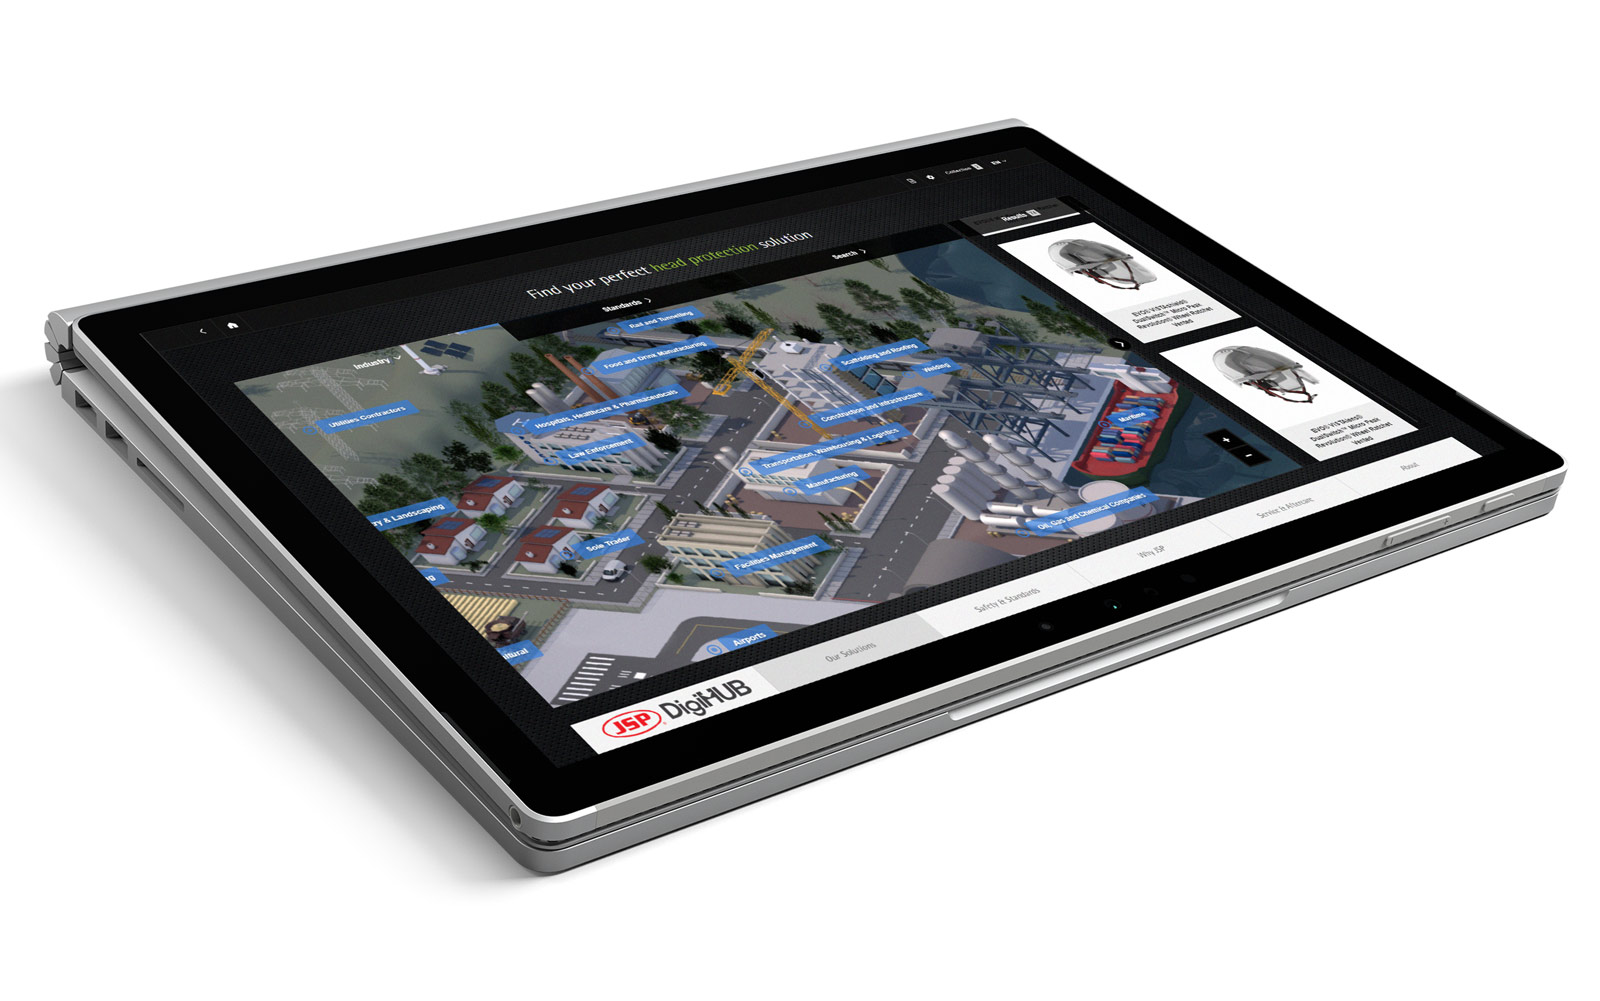 Touchscreen tablet displaying an interactive map example of JSP DigiHUB sales enablement tool